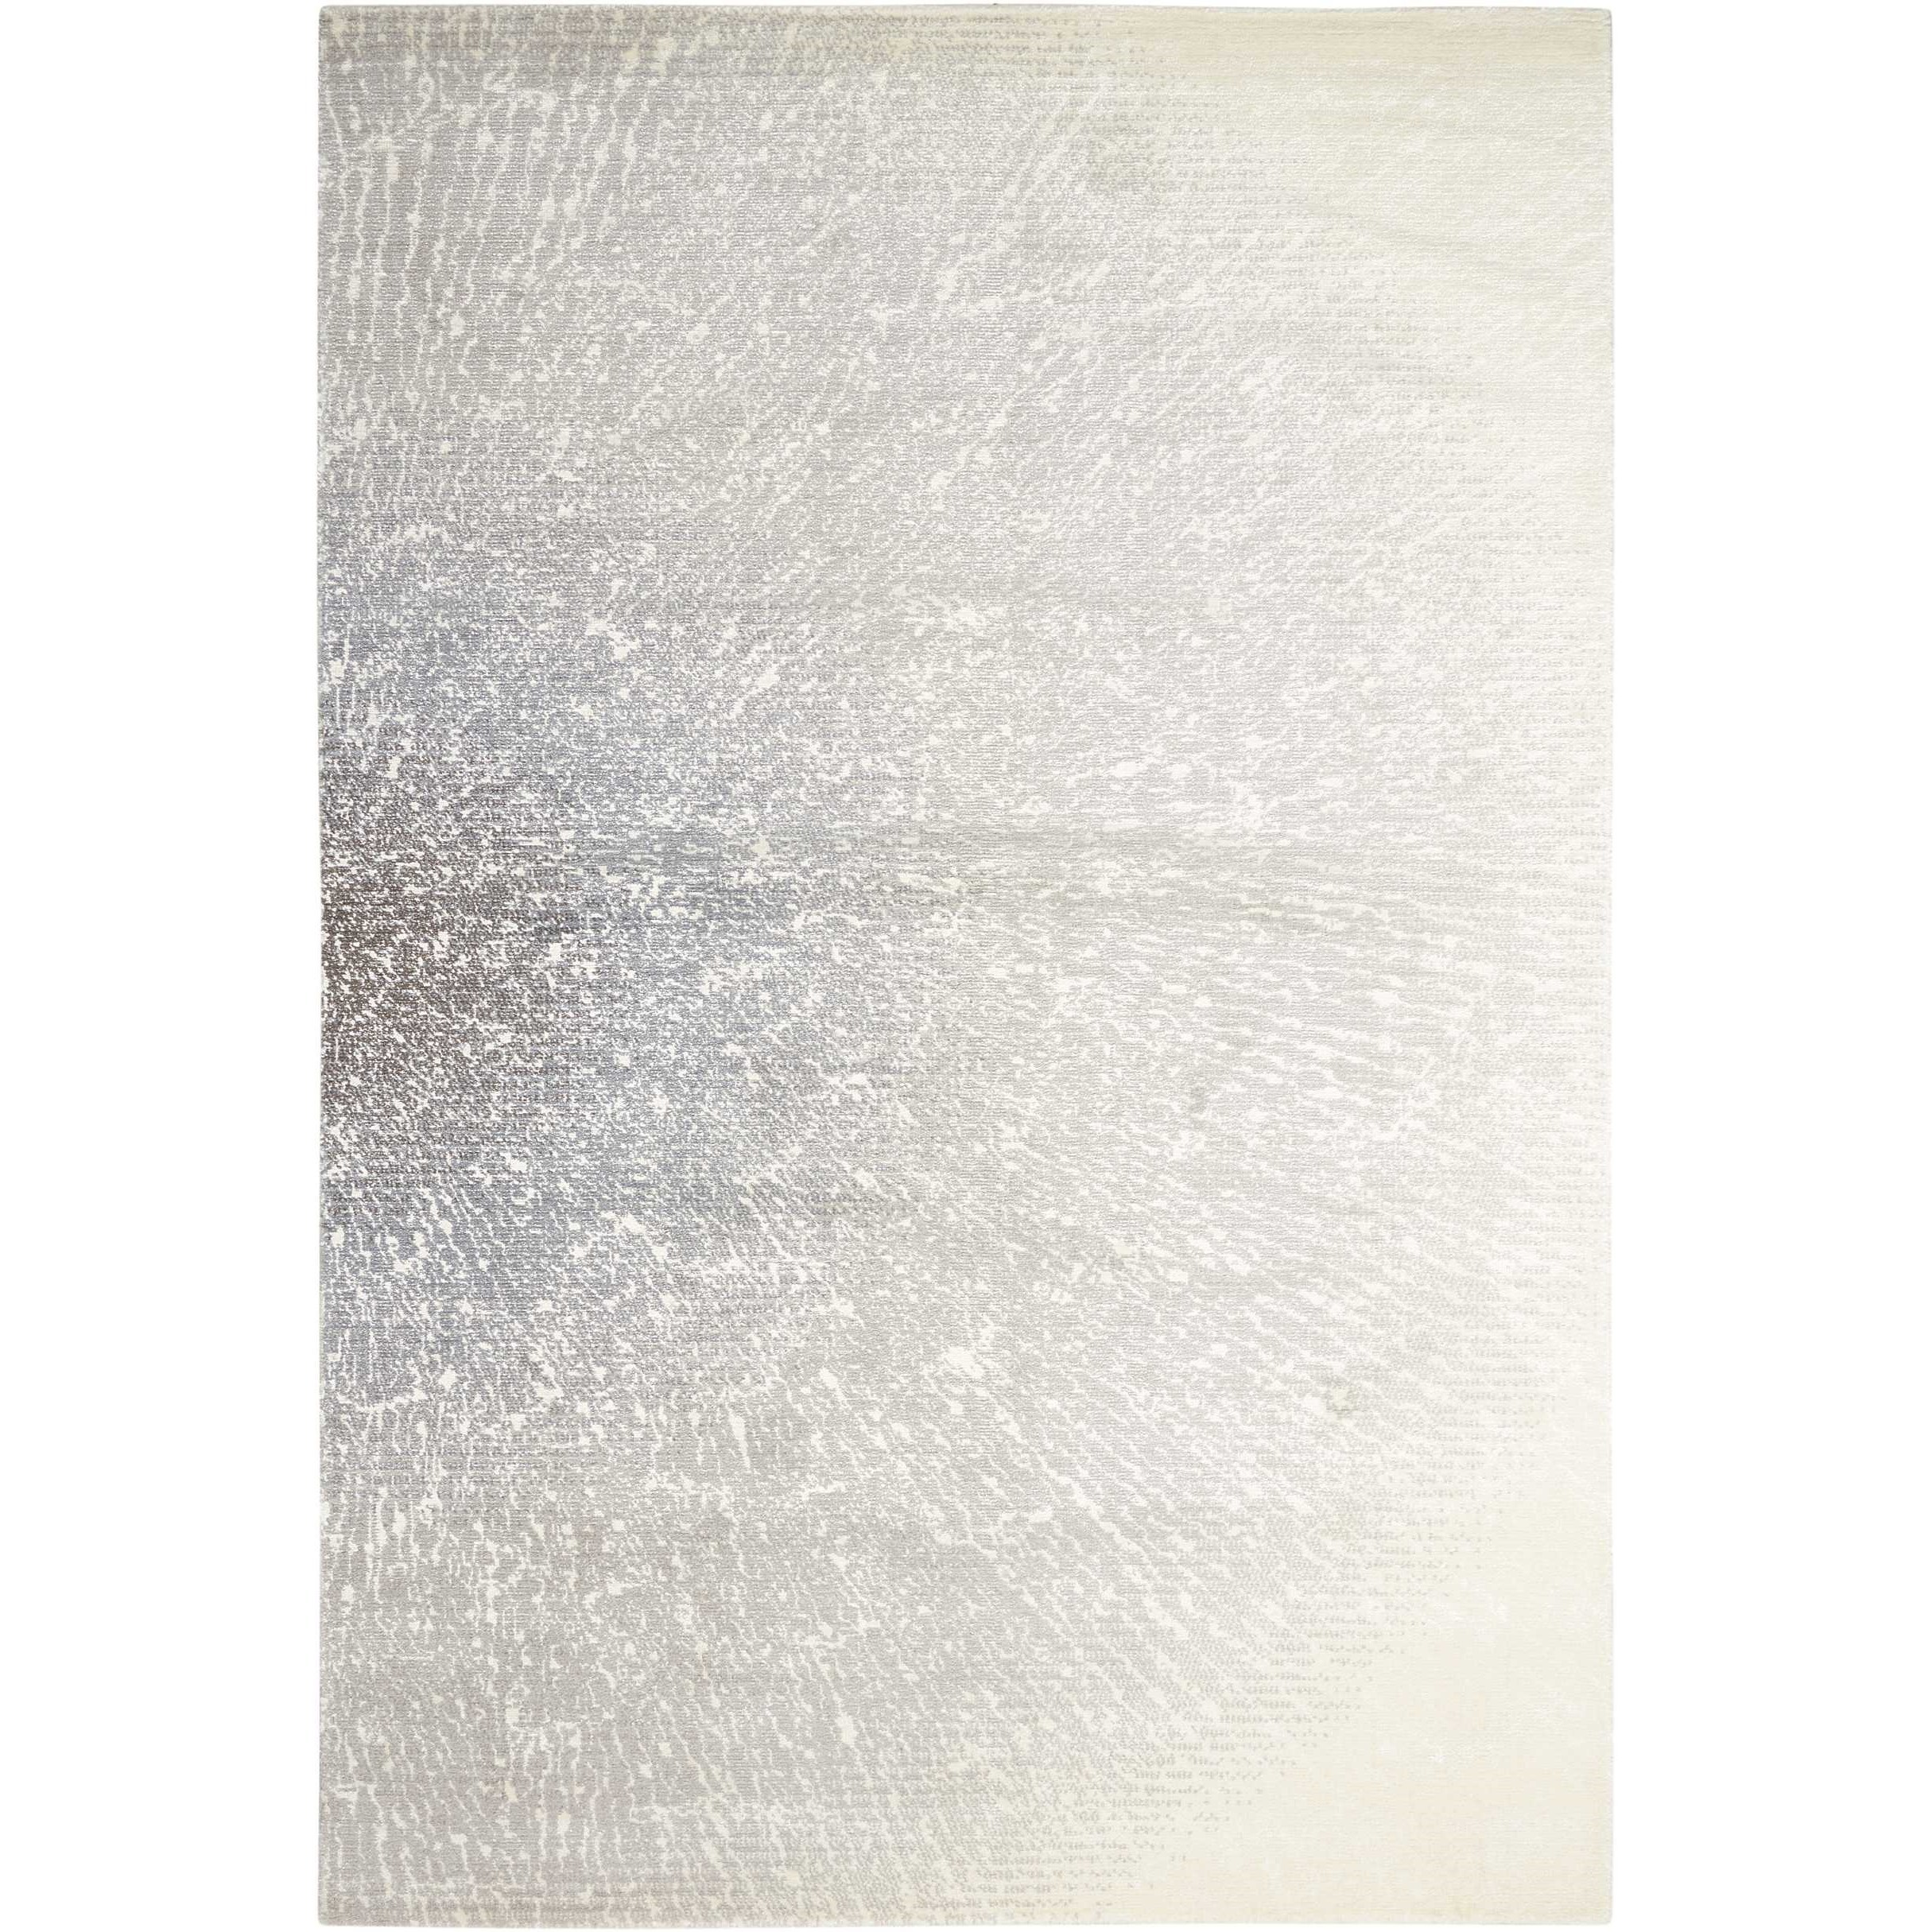 Twilight 10'x14' Oversized Rug by Nourison at Home Collections Furniture